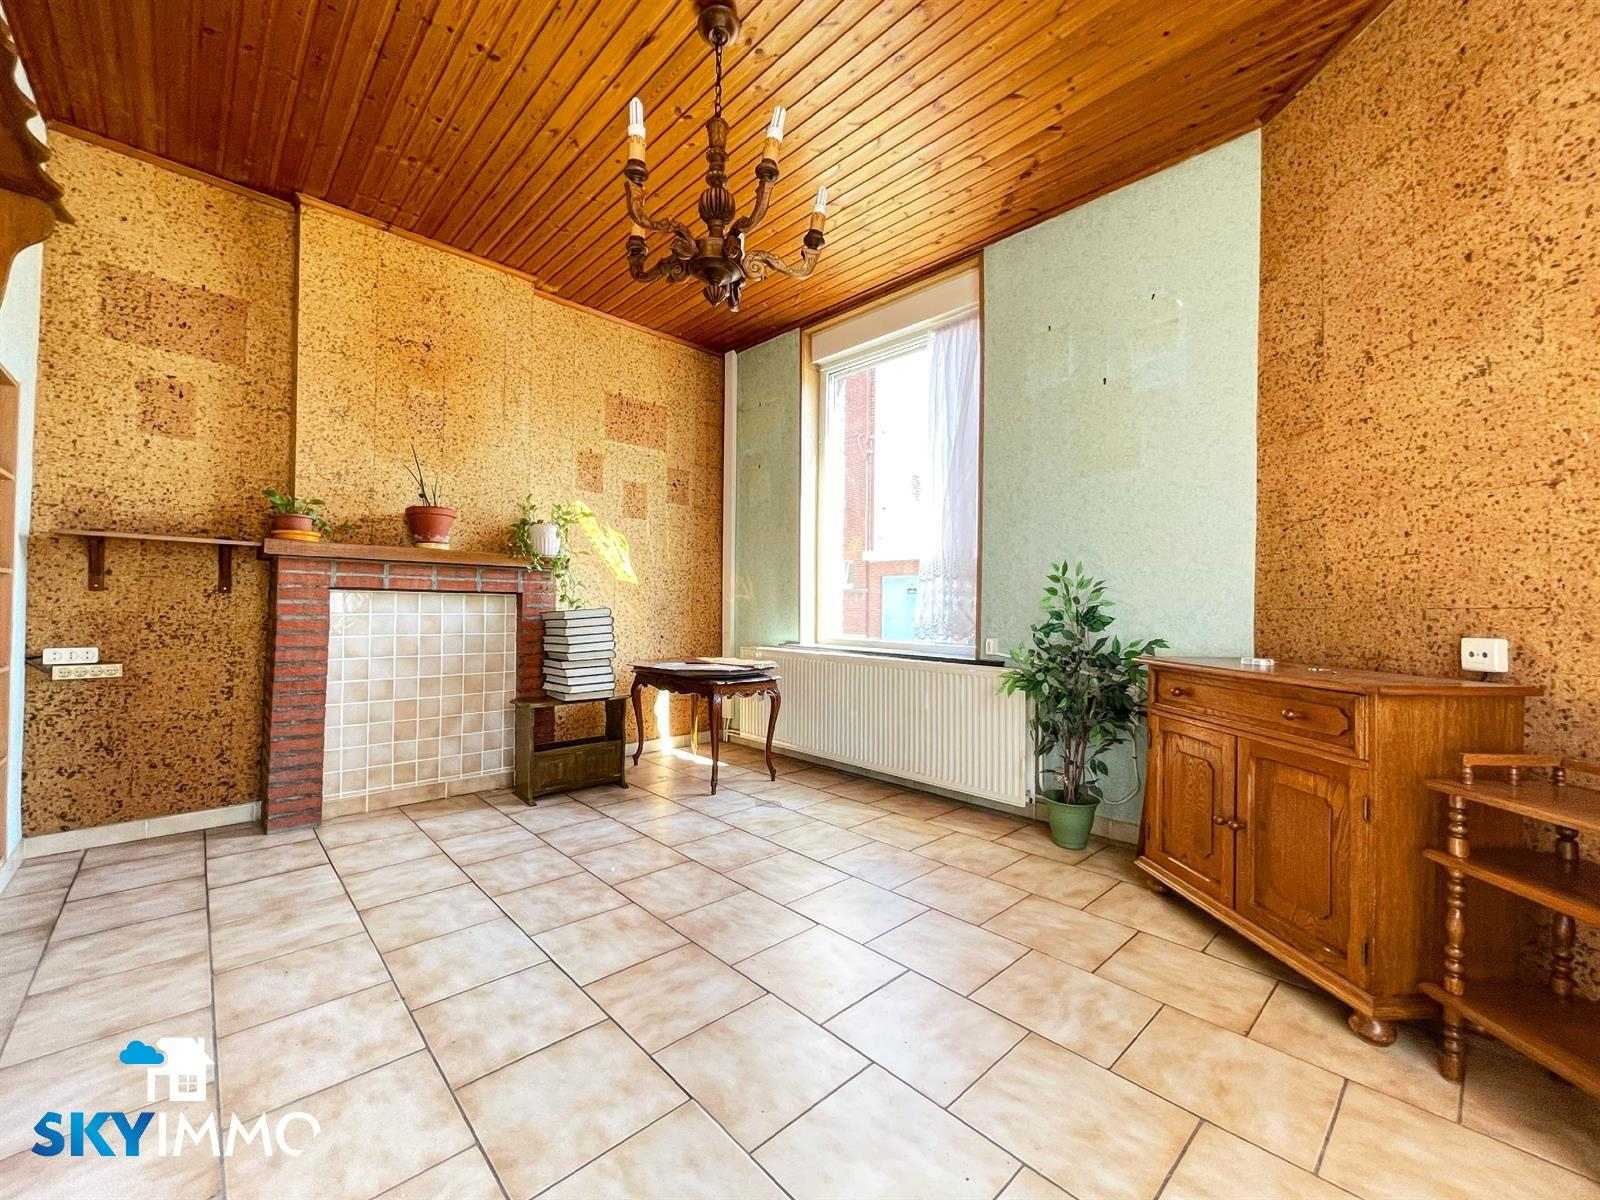 Huis - Flemalle - #4394734-3